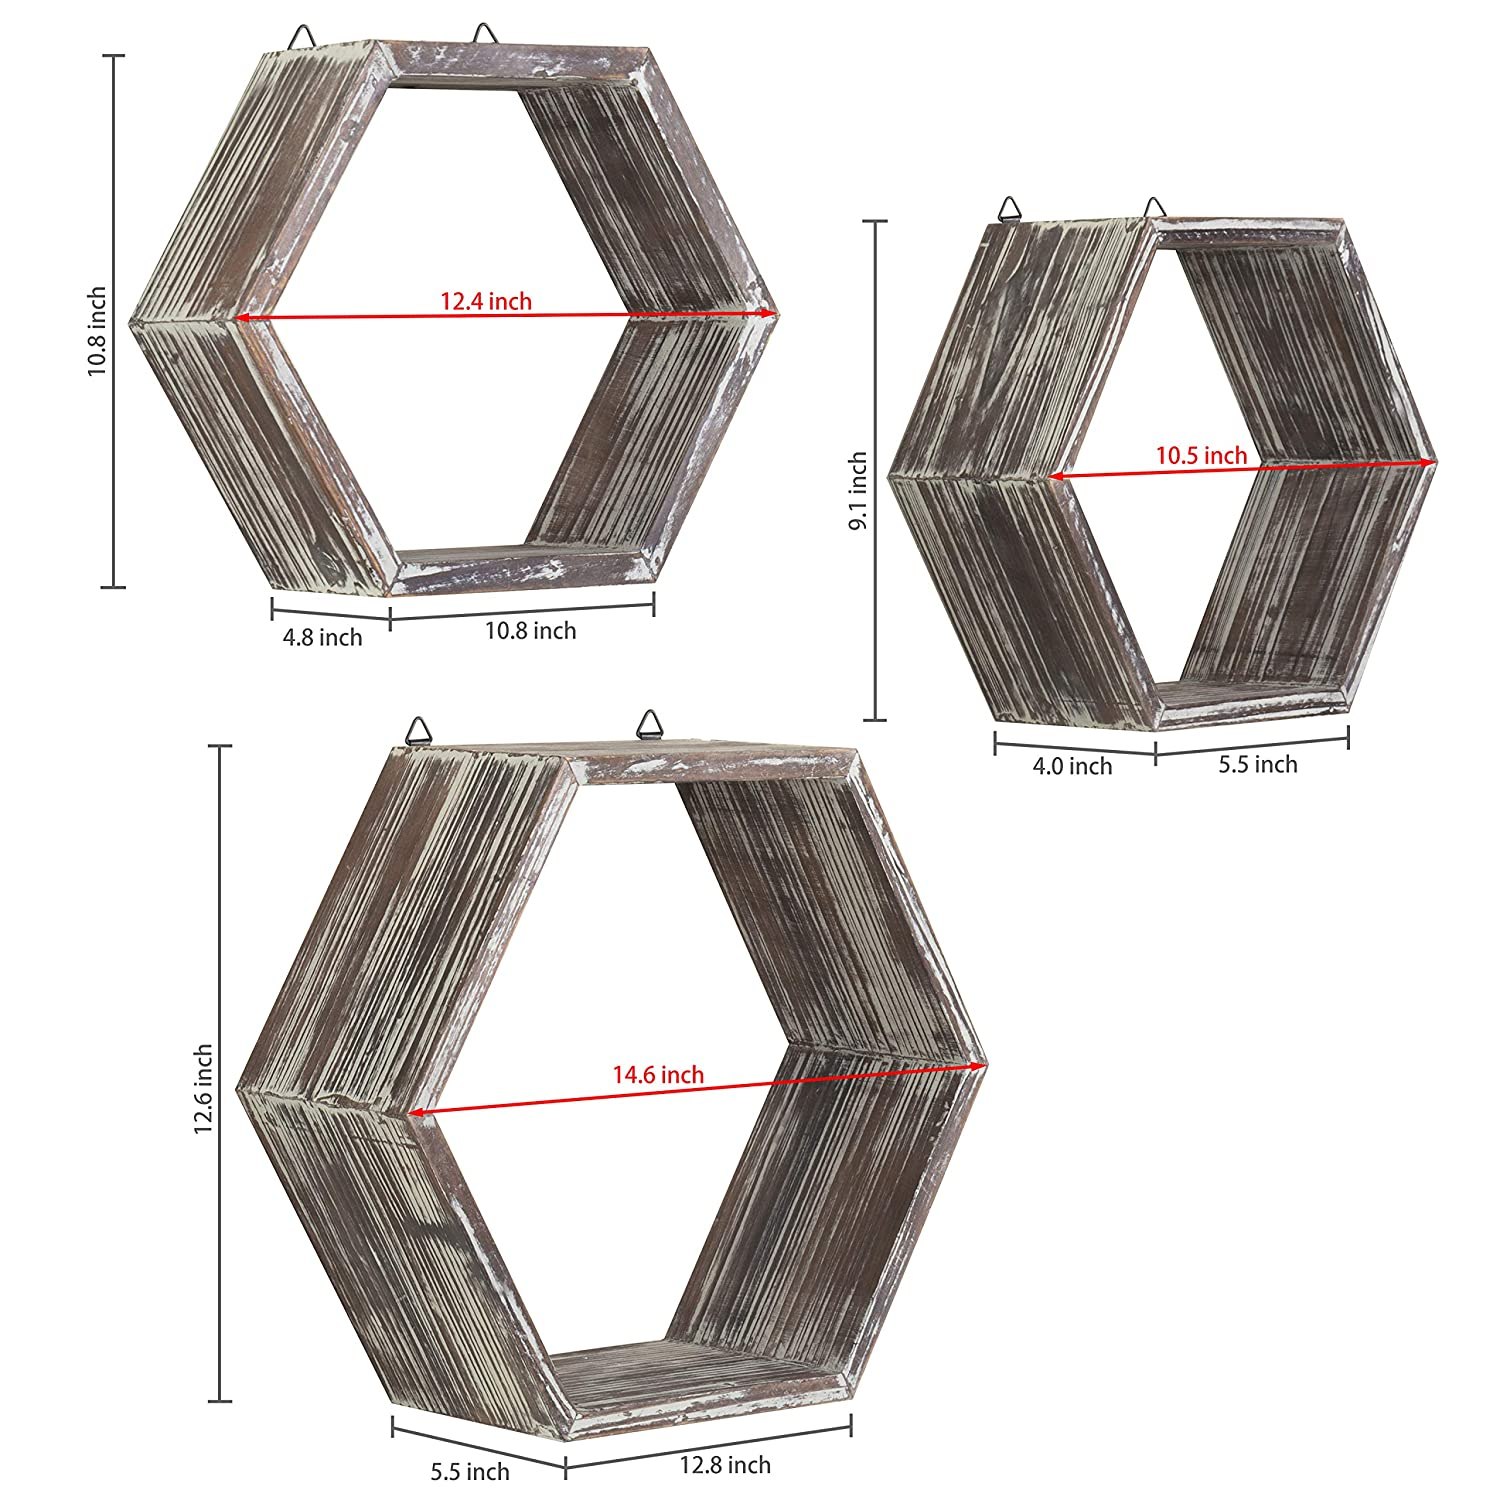 Hexagon Display Shelves MyGift Rustic Wall-Mounted Torched Wood Shadow Boxes Set of 3